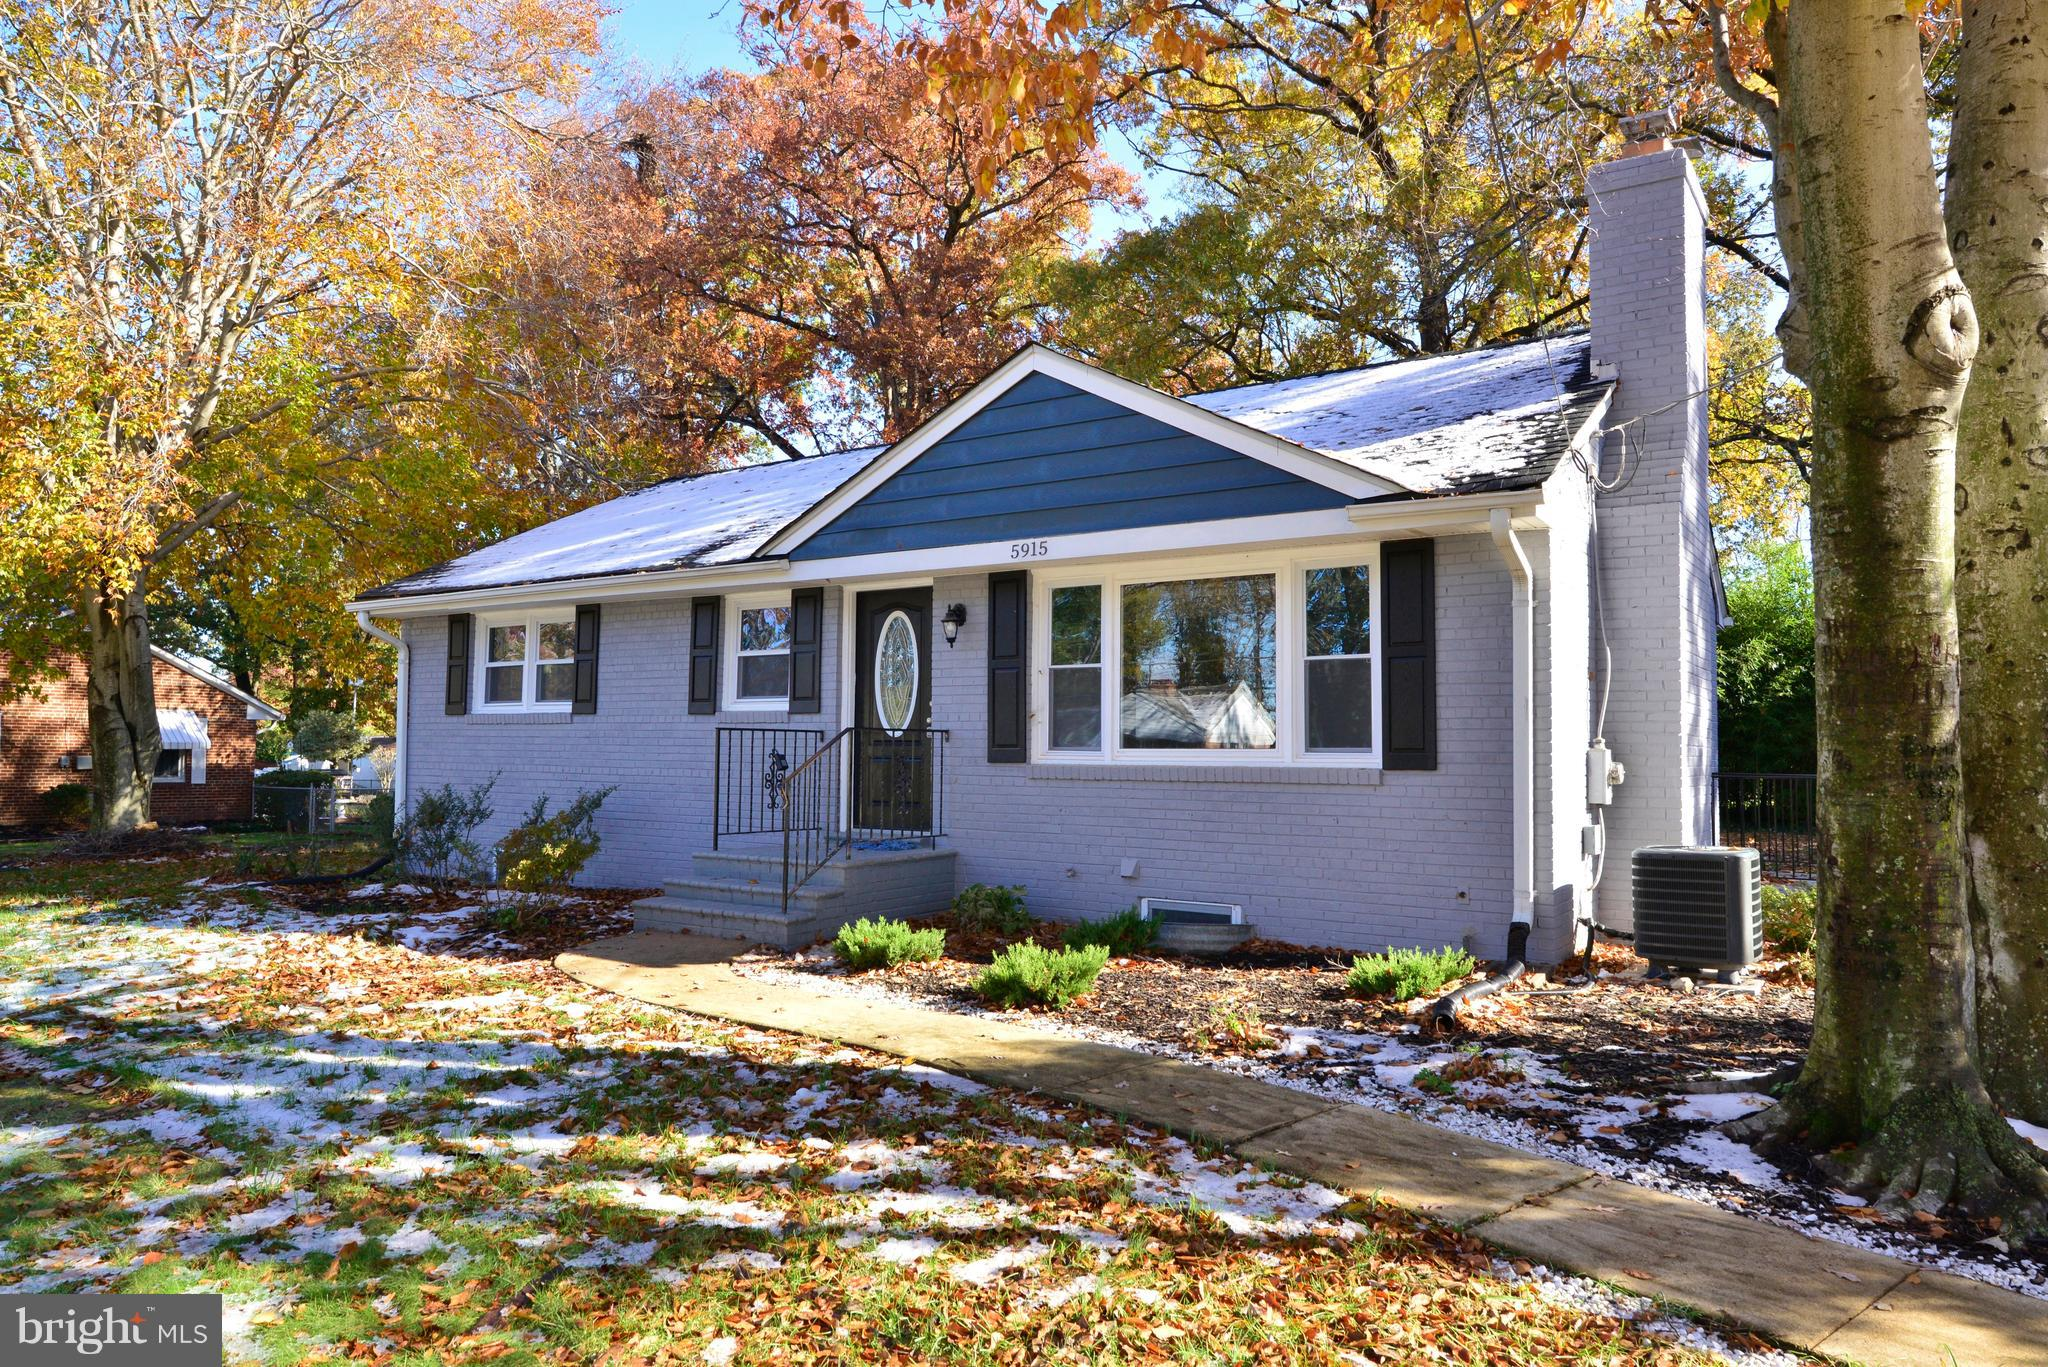 Awesome 2 Level Rambler w/ Tons of Renovations! New Kitchen w/ 42in Cabs, Backsplash, Granite, SS Applncs! New BA's w/ nice fixtures & tilework. New Roof, Windows, AC! Kit opens to dining/living w/ fireplace! Gorgeous 0.34 acre flat lot. Walk to Bush Hill Elem & Edison HS! So convenient to Ft Belvoir, Van Dorn Metro, Pentagon, future Amazon HQ2!